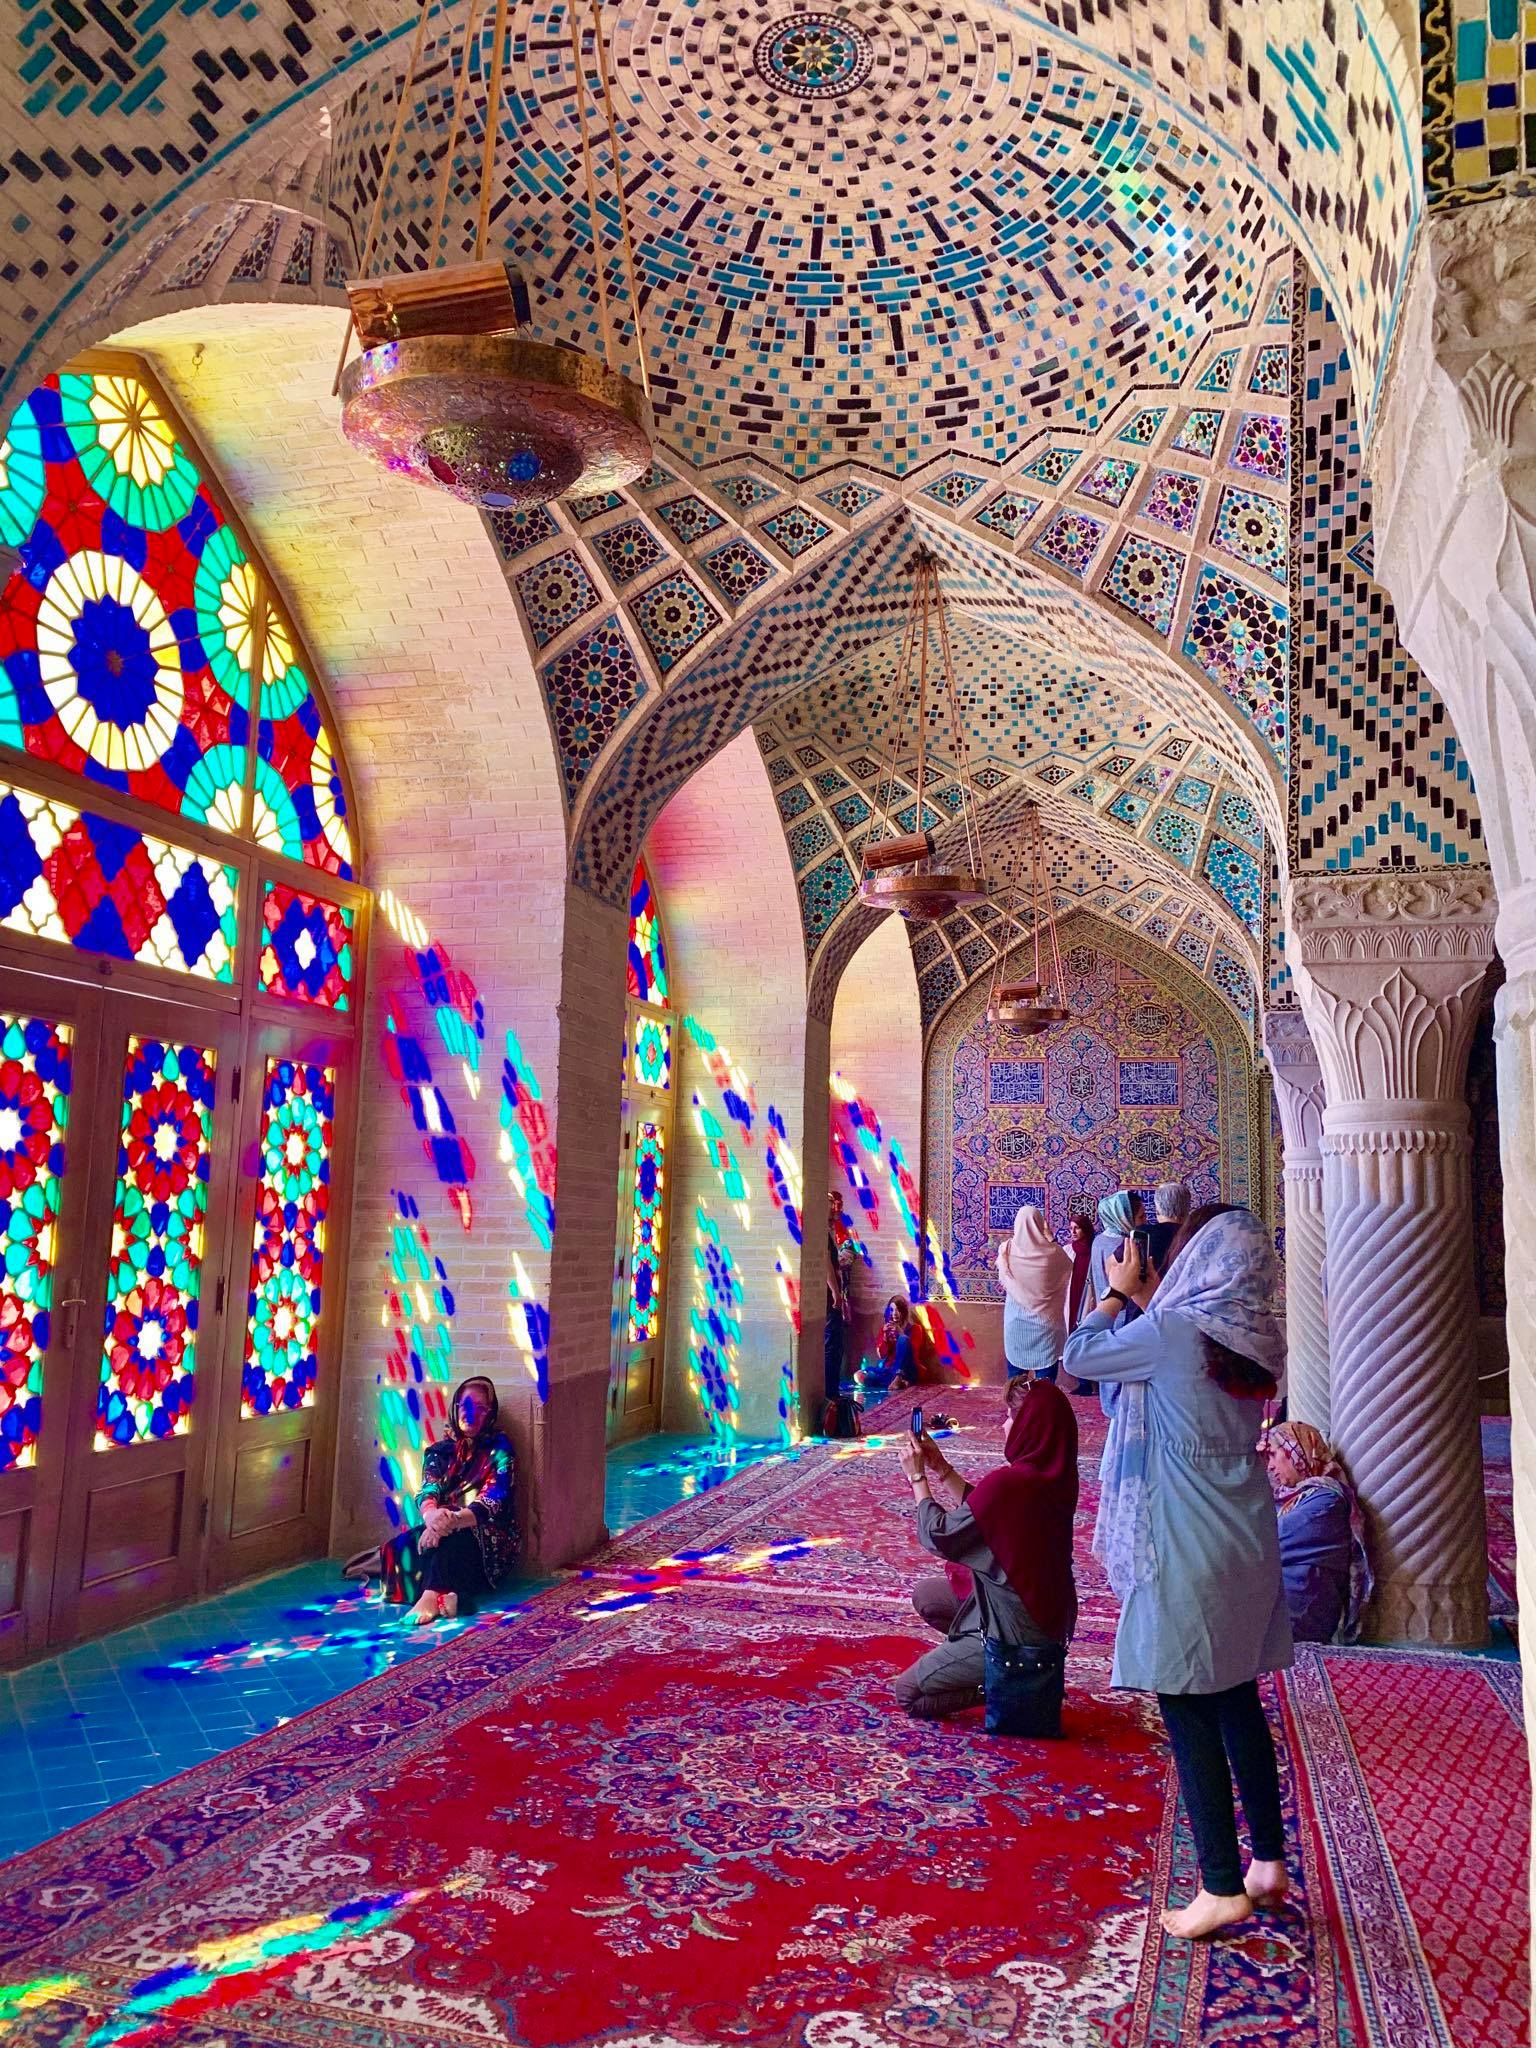 Kach Solo Travels in 2019 Full day tour of Shiraz46.jpg